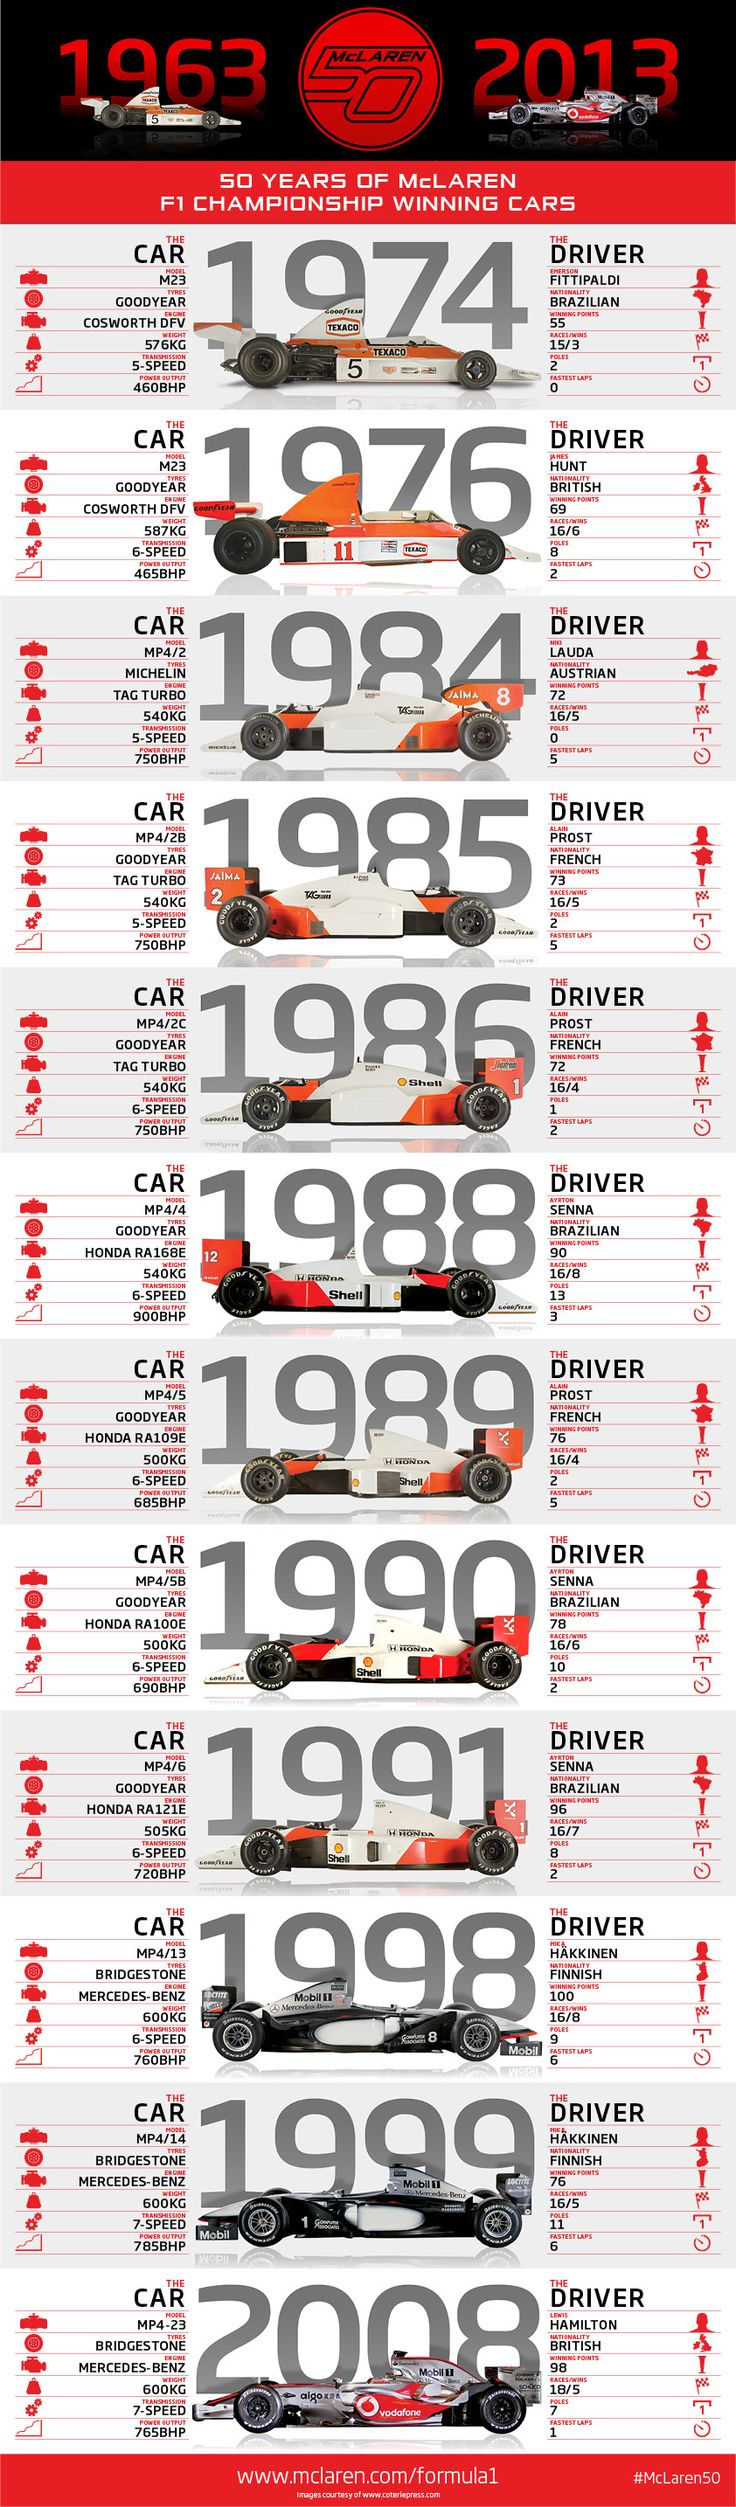 50 years of McLaren F1 championship winning cars: infographic